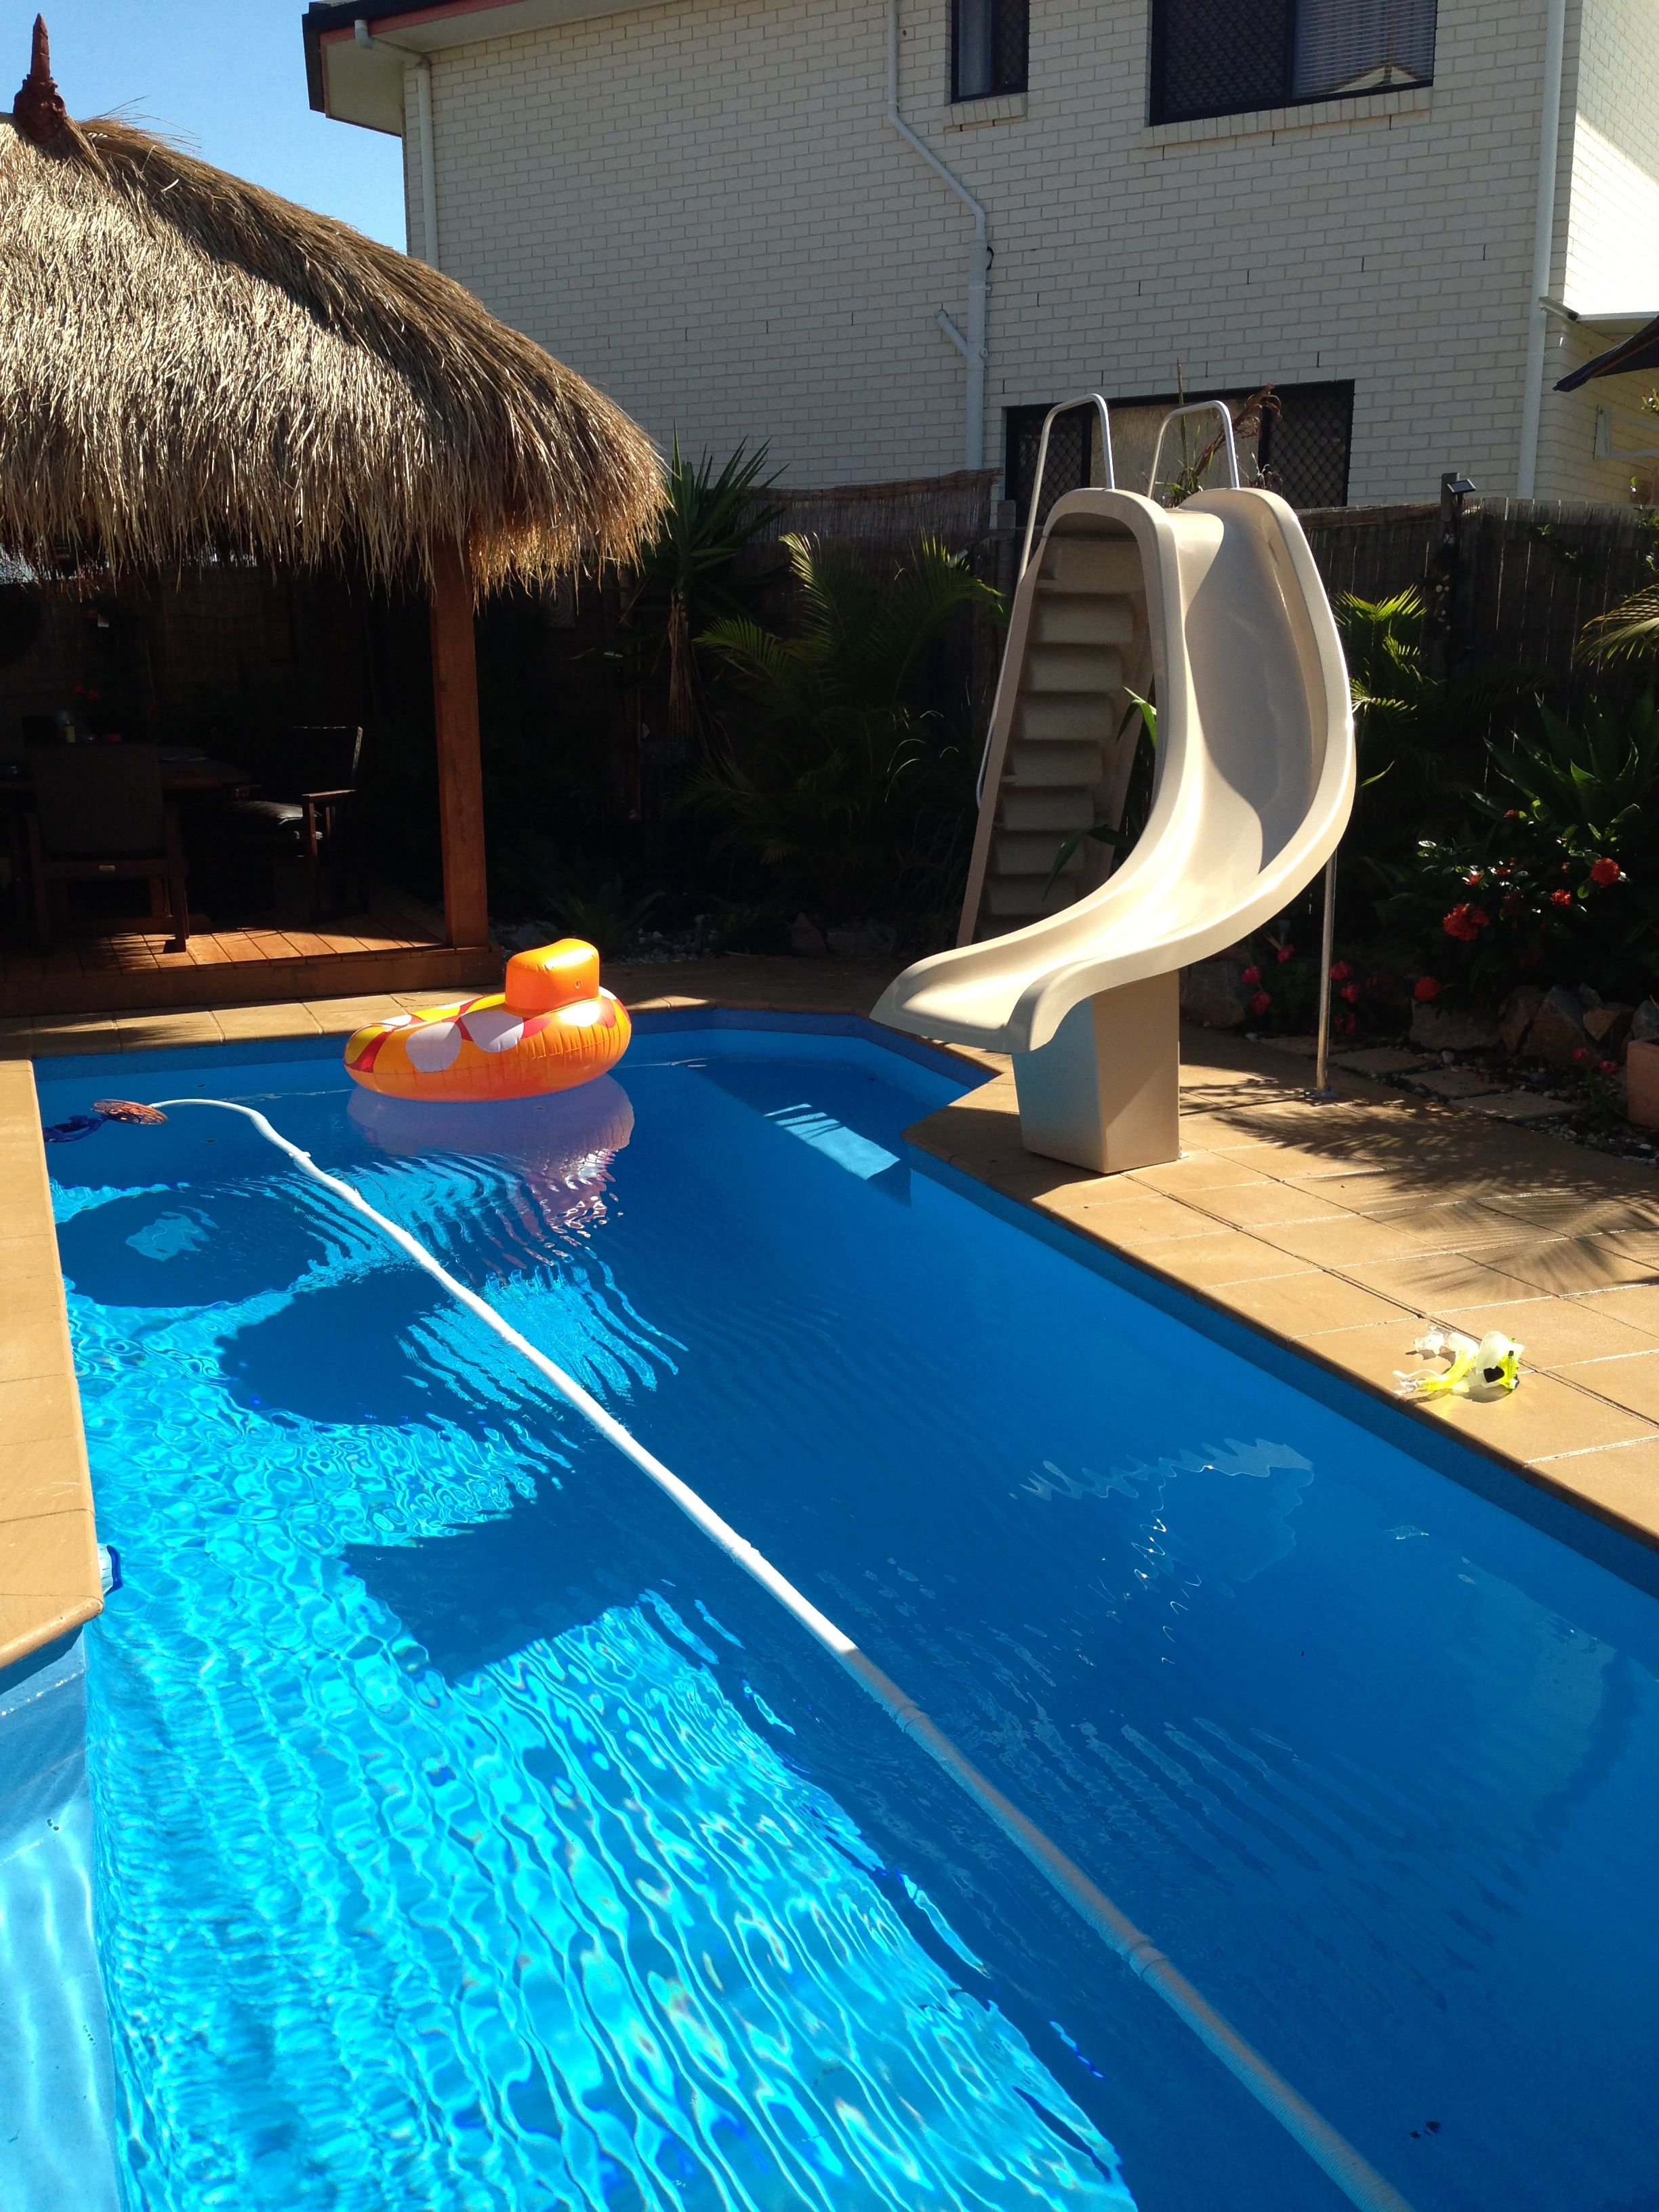 Fibreglass 4 Leisure Pool slide with nonslip steps and water jet ...